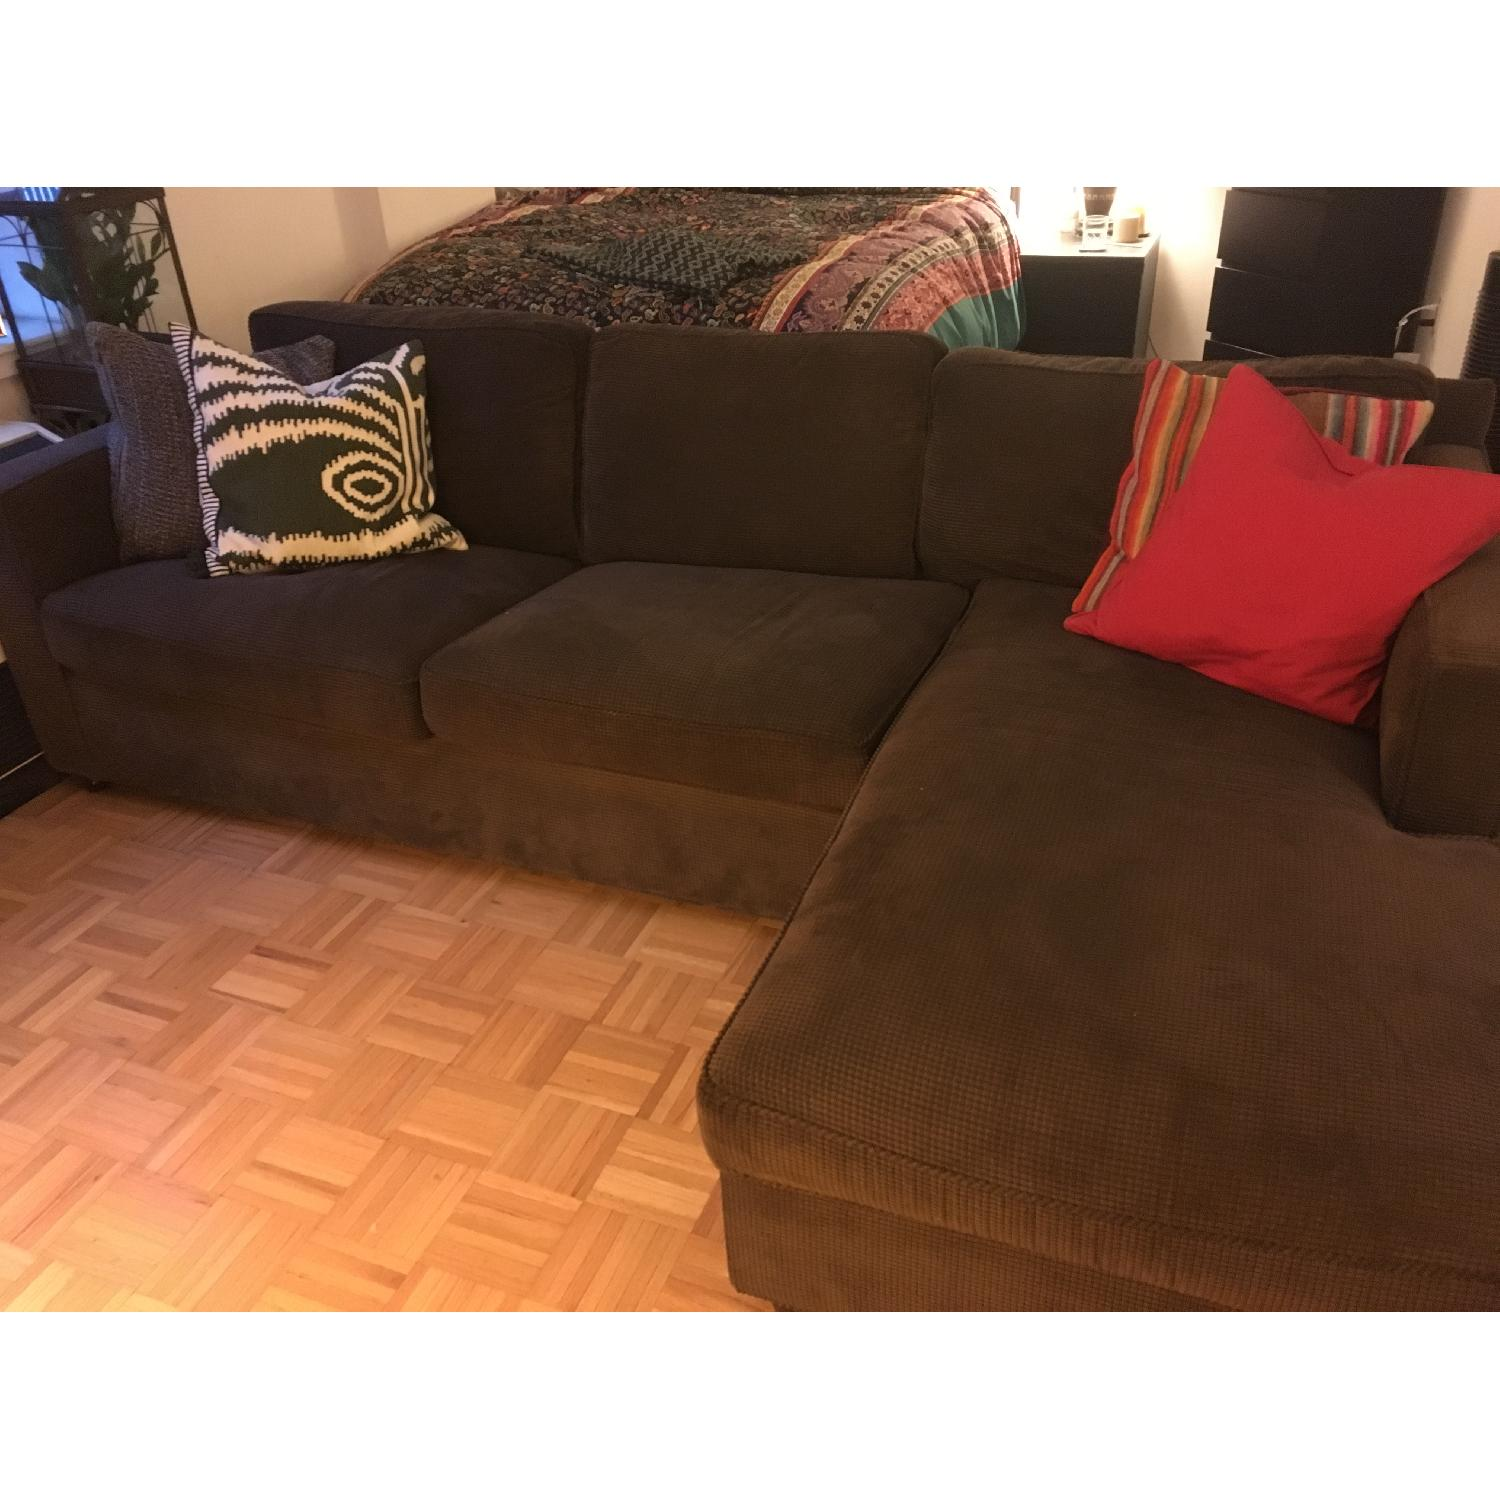 Swell Crate Barrel Chocolate Corduroy Chaise Sectional Sofa Gamerscity Chair Design For Home Gamerscityorg